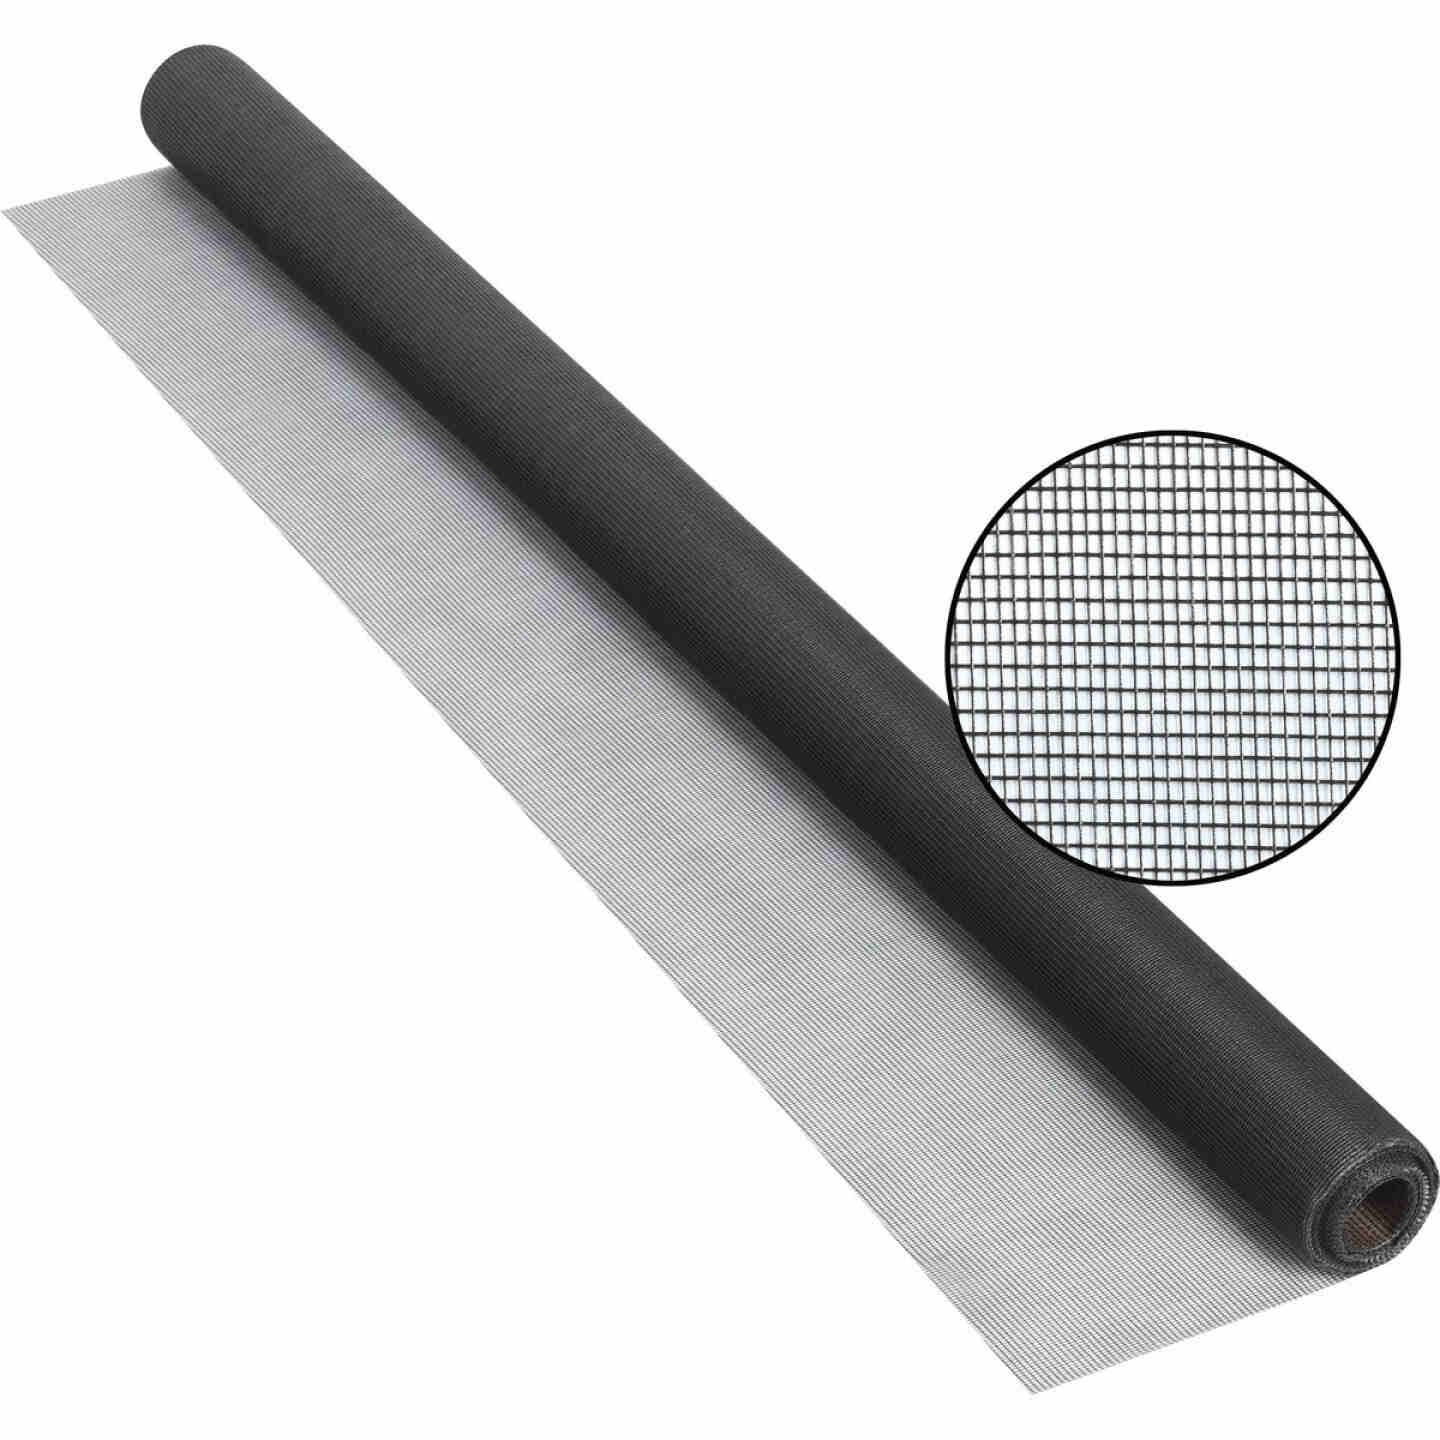 Phifer 48 In. x 25 Ft. Charcoal Fiberglass Screen Cloth Image 1